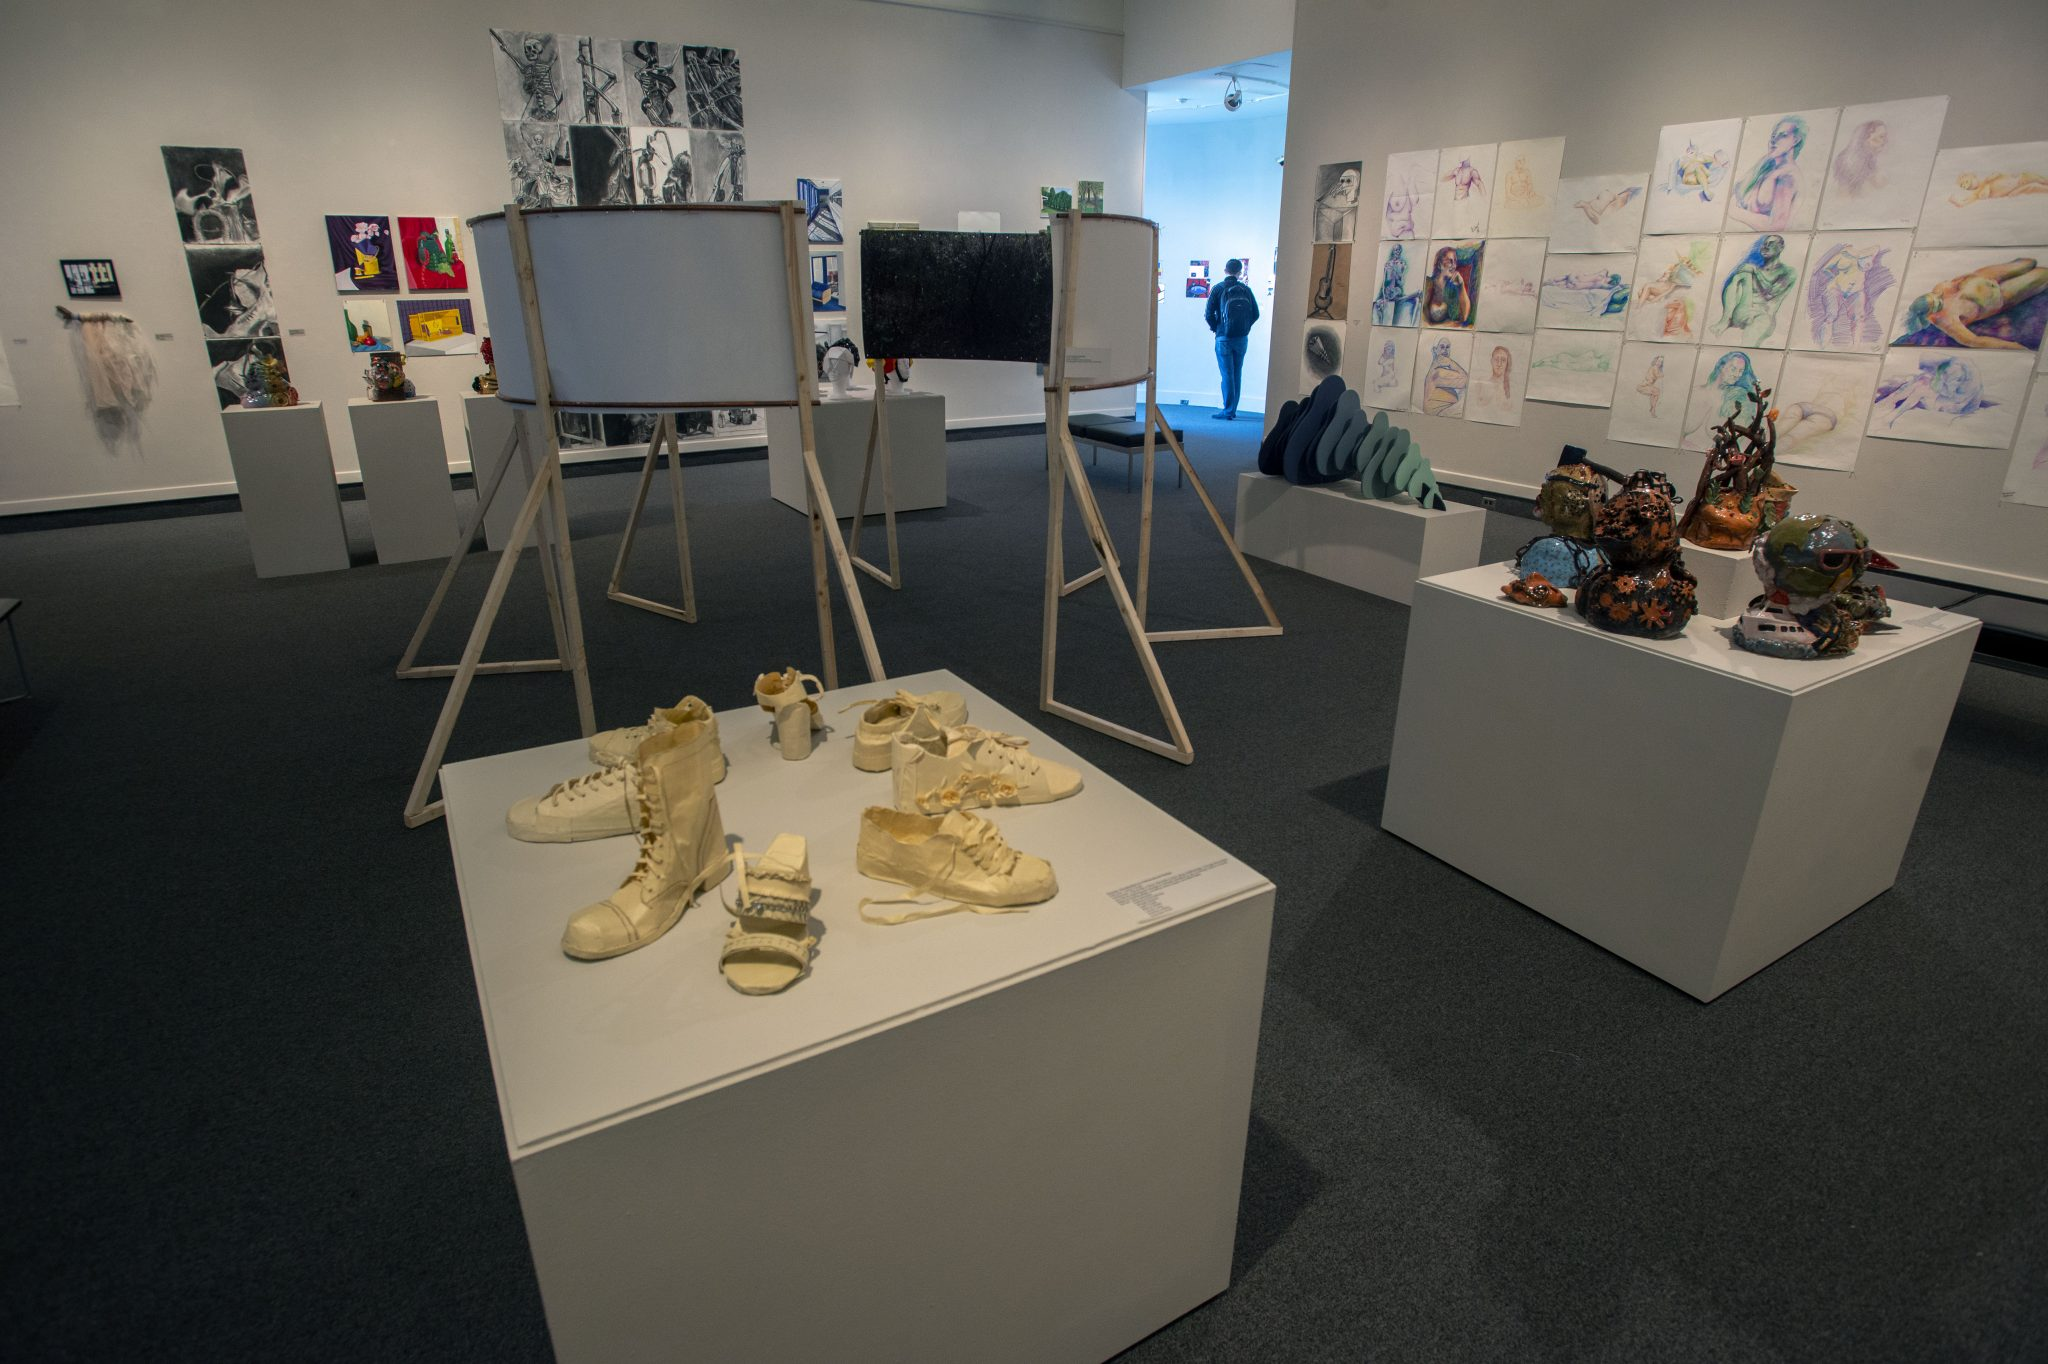 "The Art Gallery at the University of West Florida presented ""Points of Departure: A Foundations-level Exhibition"" from Monday, Jan. 7 - Thursday, Jan. 24, 2019. A closing reception took place on Thursday, Jan. 24, 2019. TAG is located in the Center for Fine and Performing Arts, Building 82, on the Pensacola campus."